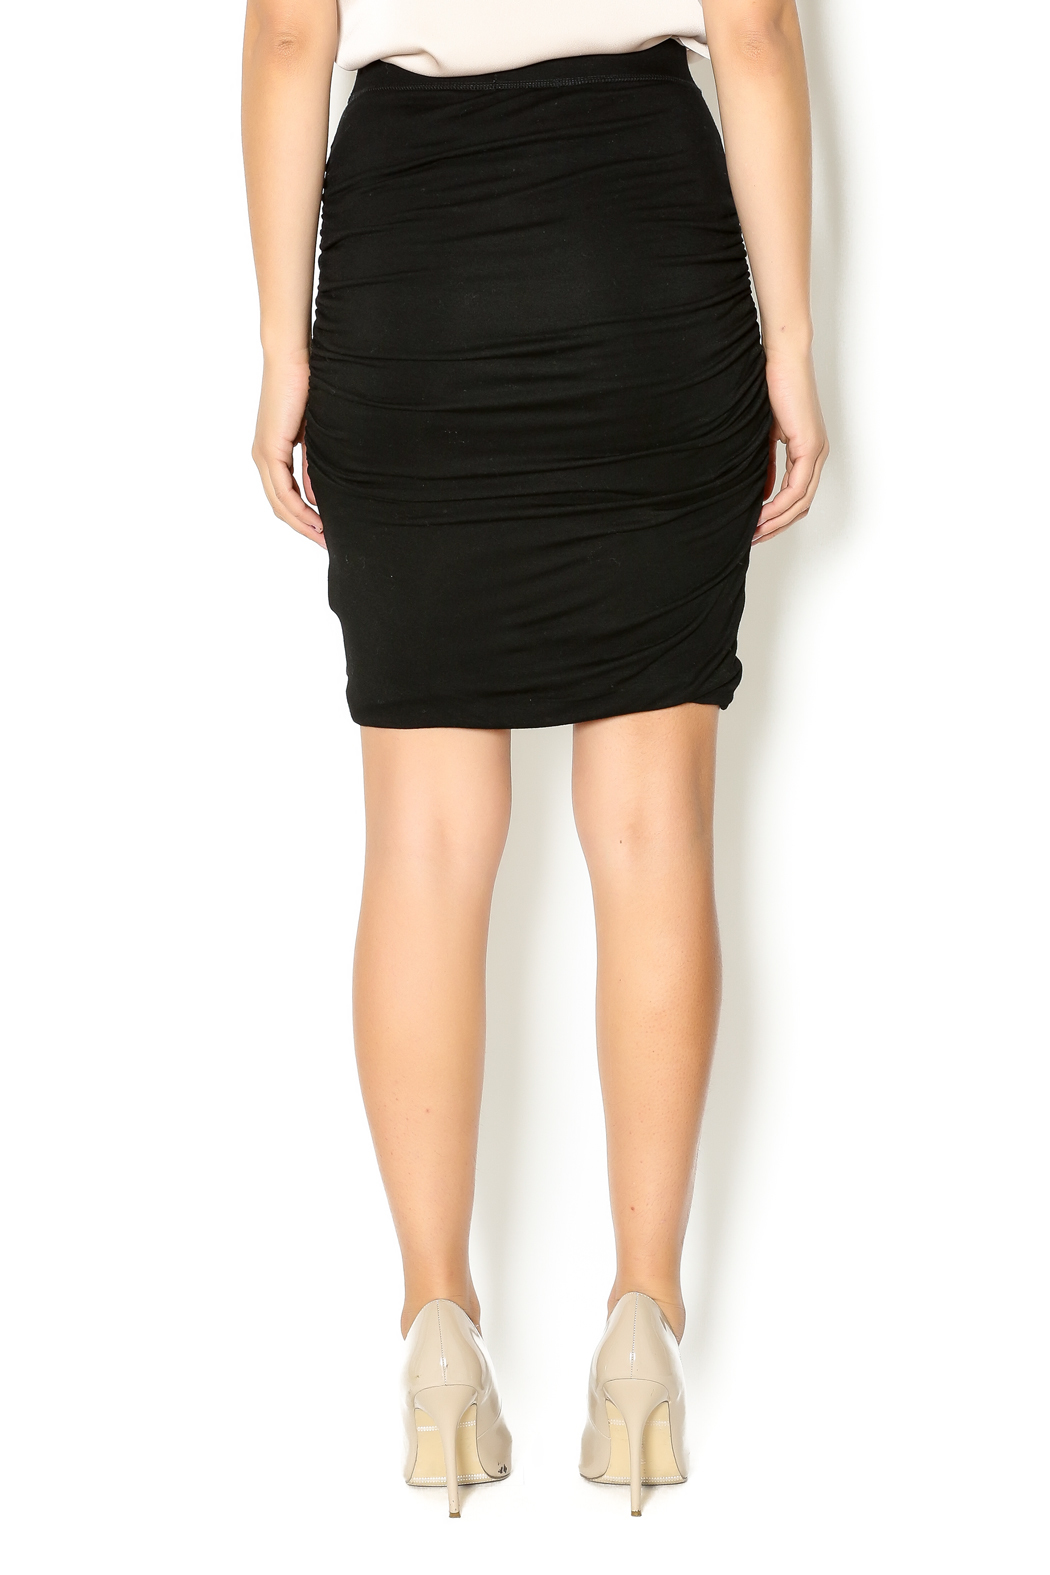 Bishop + Young Black Ruched Skirt - Back Cropped Image